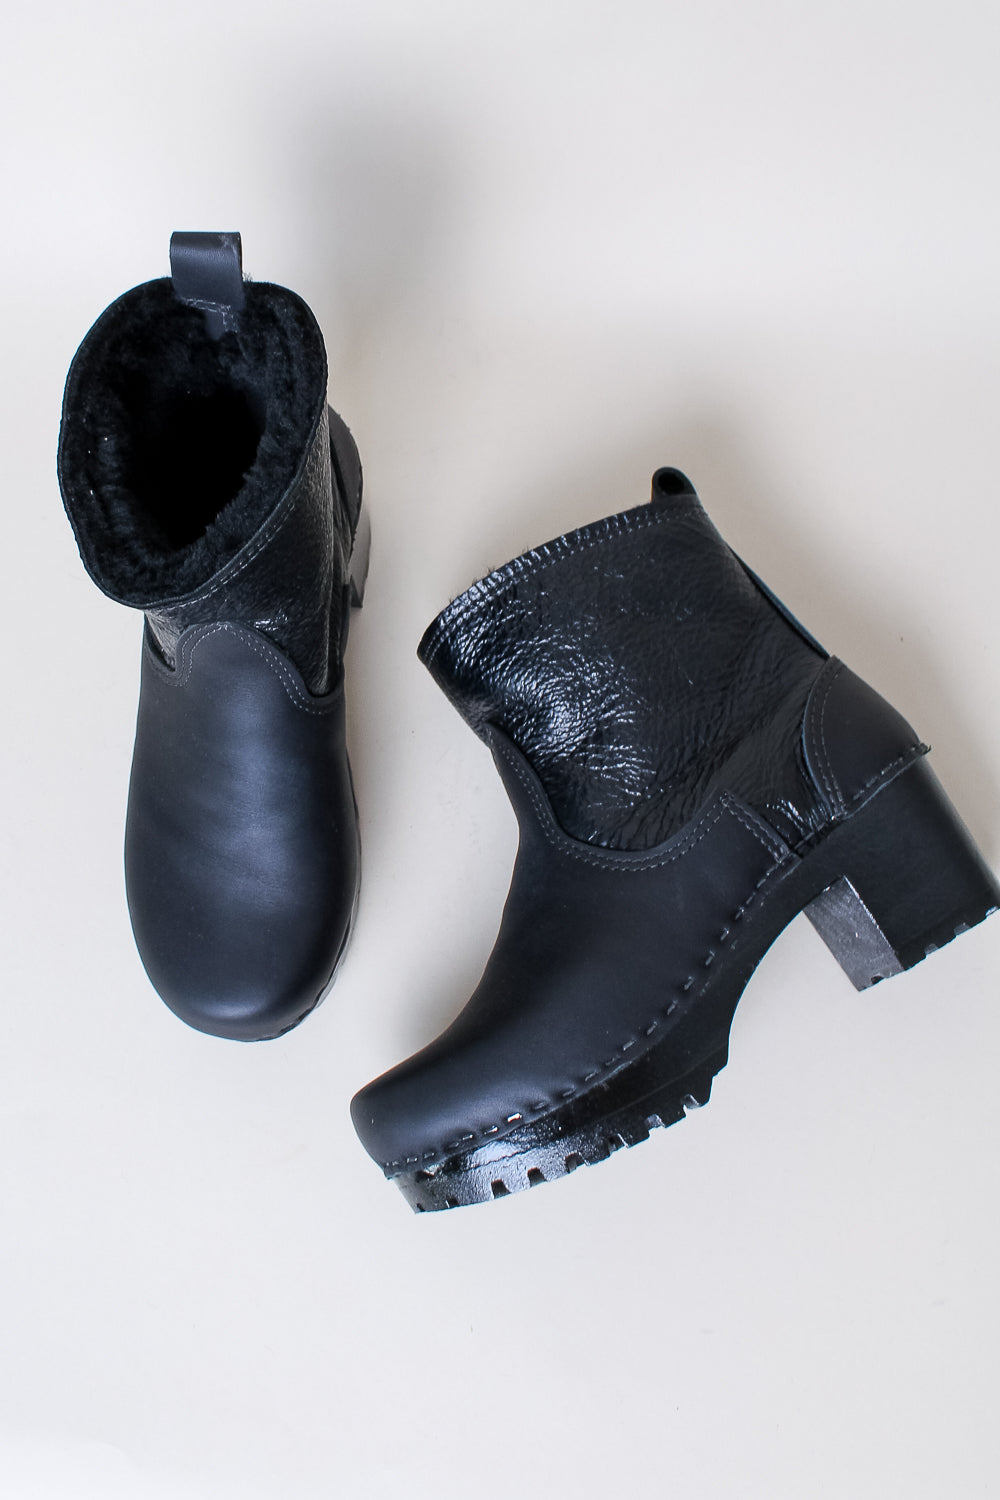 Shearling Clog Boot in Black Aviator